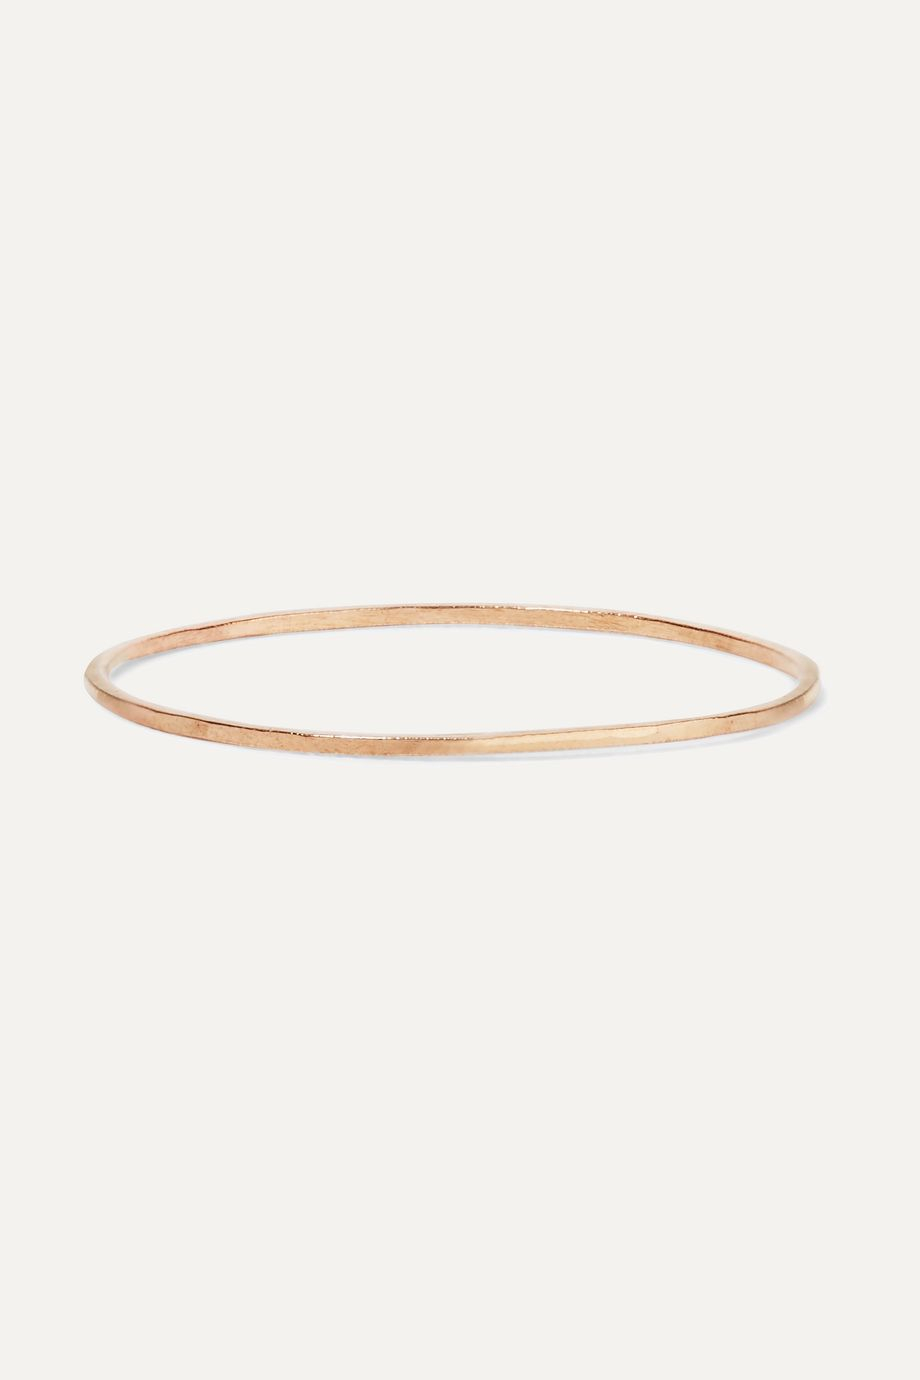 Catbird Threadbare 14-karat gold ring